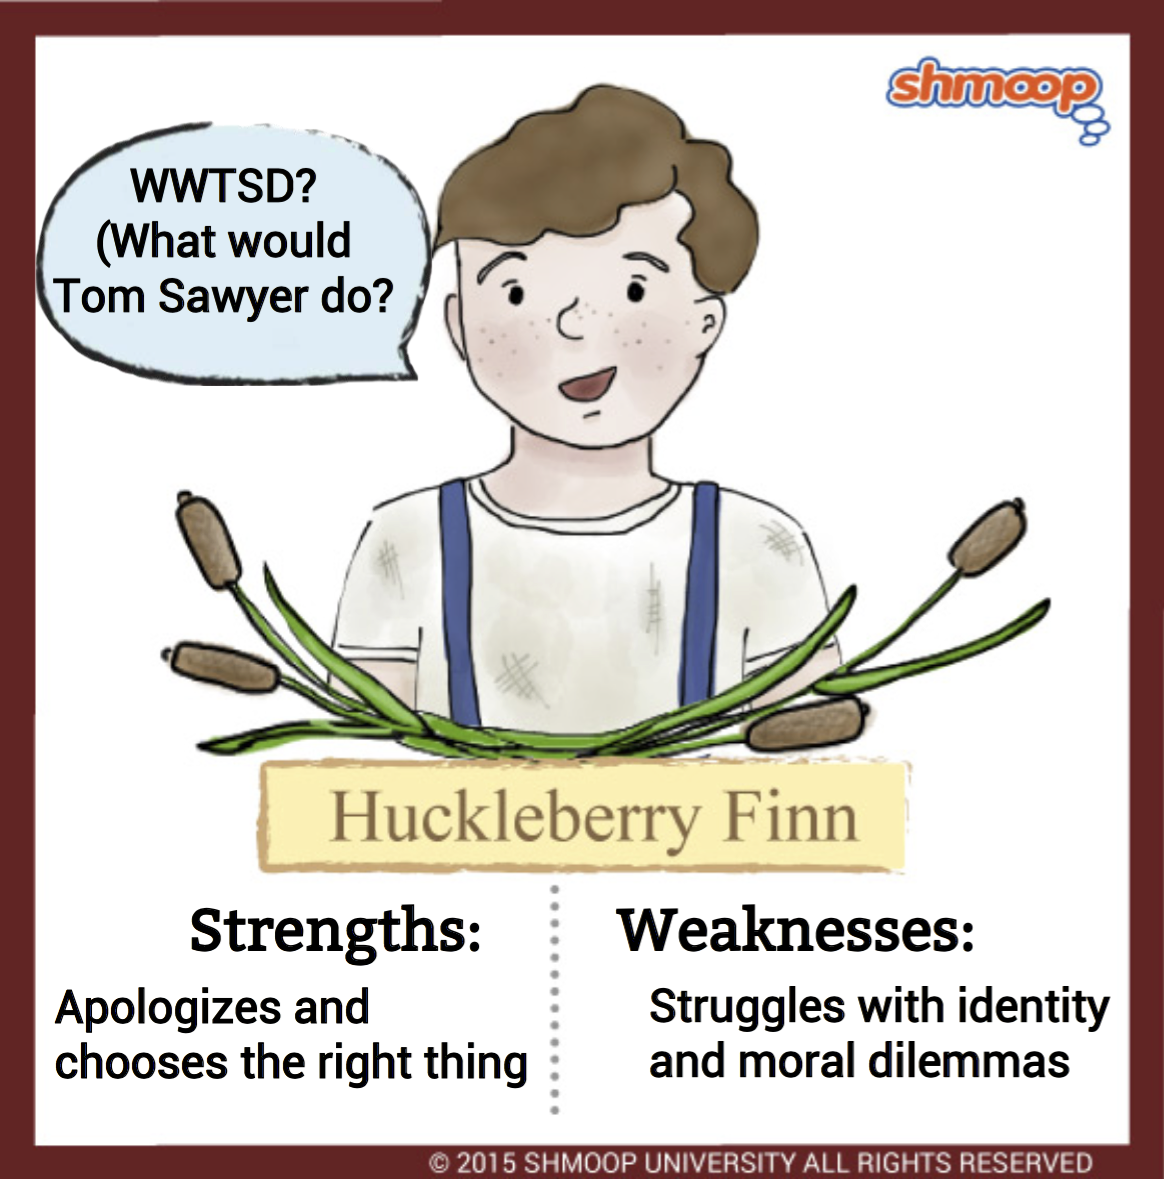 huckleberry finn in adventures of huckleberry finn chart huckleberry finn